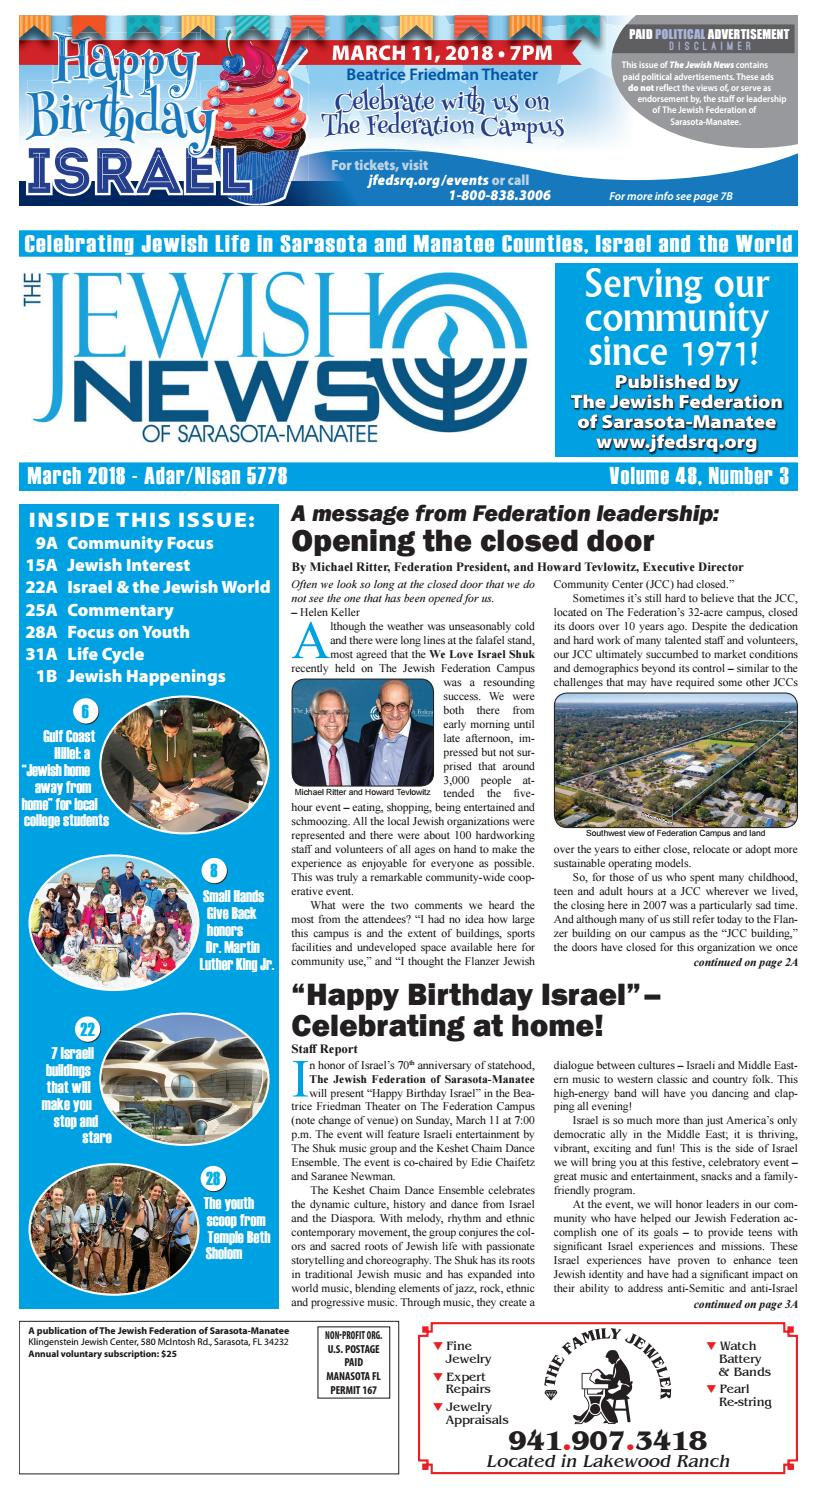 The Jewish News - March 2018 by The Jewish Federation of Sarasota-Manatee -  issuu